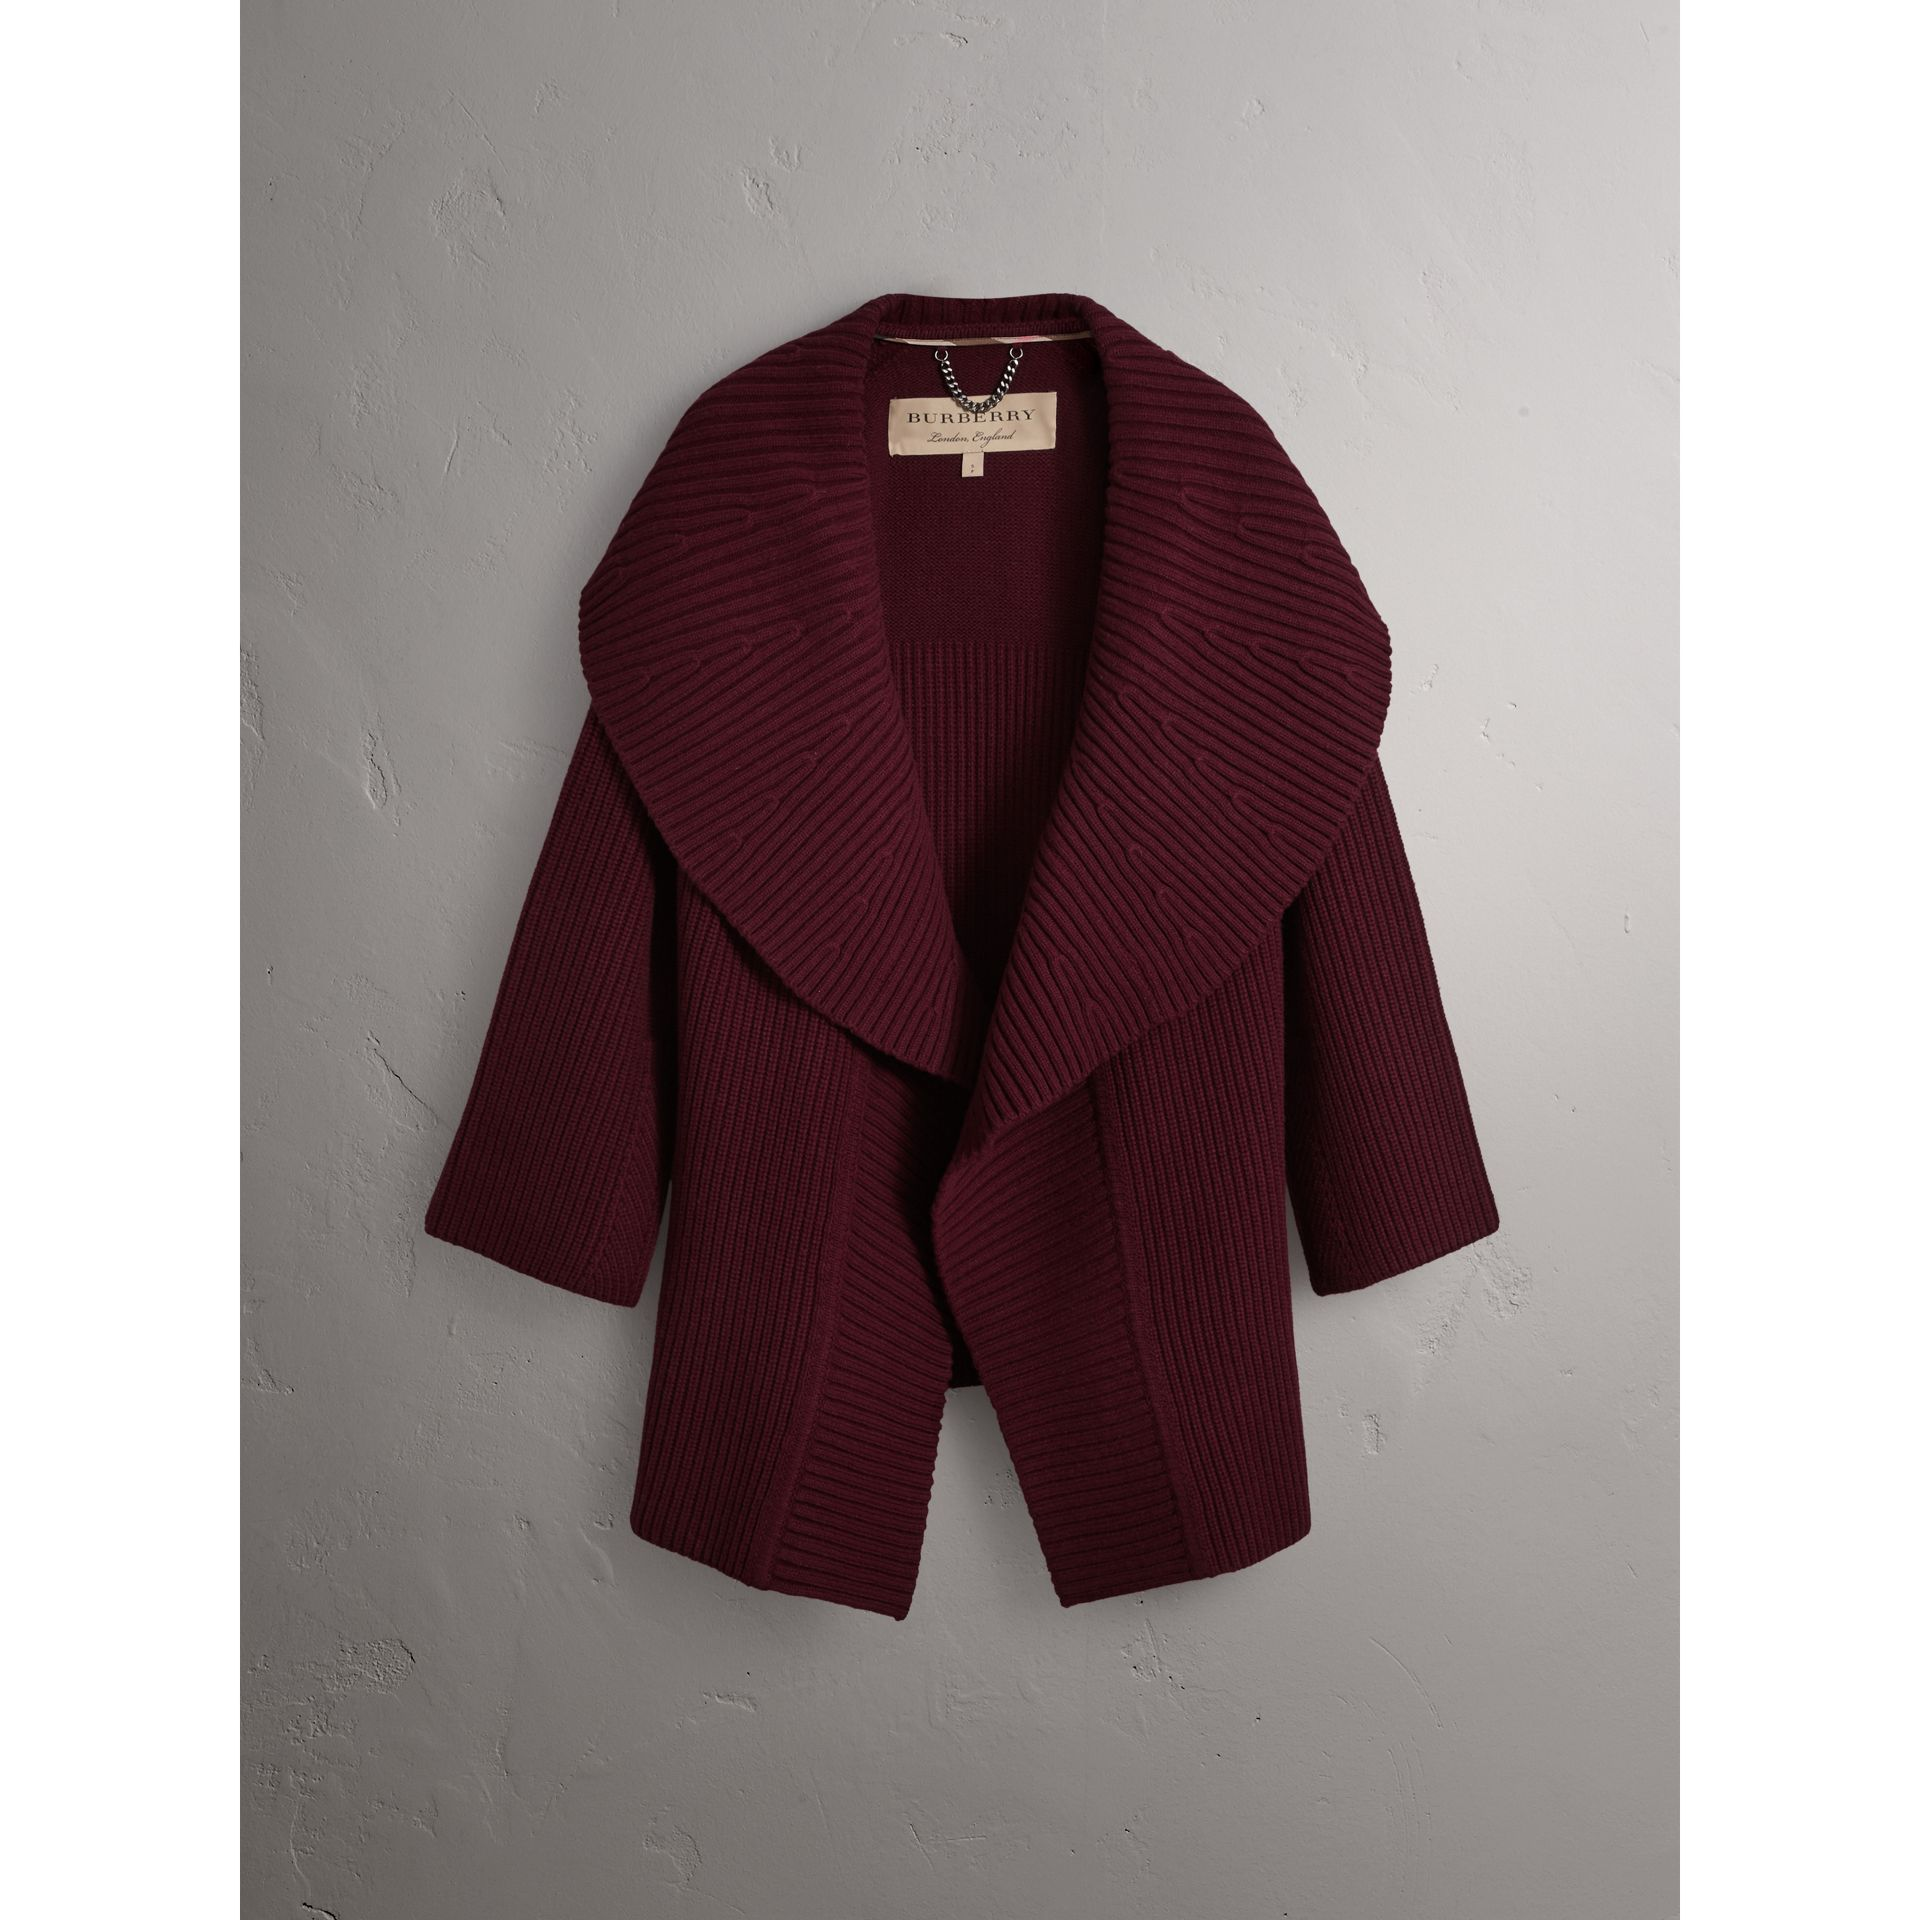 Ribbed Wool Cashmere Cardigan Coat in Burgundy - Women | Burberry Hong Kong - gallery image 4